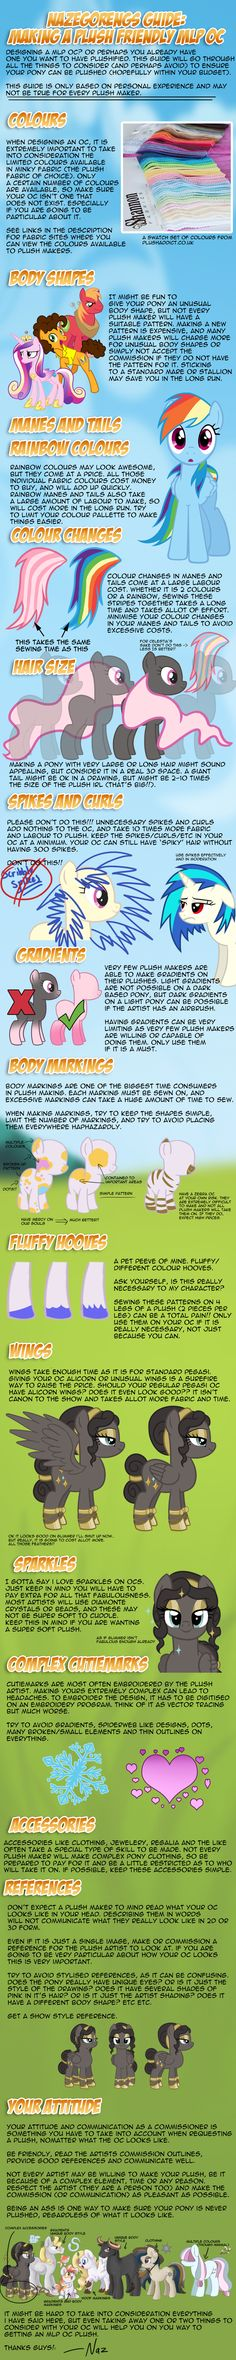 Naz's Guide - How to Make a Plush Friendly MLP OC by Nazegoreng i might try to make my own plush... so this doesnt help too much but i will consider alot of this :) <3